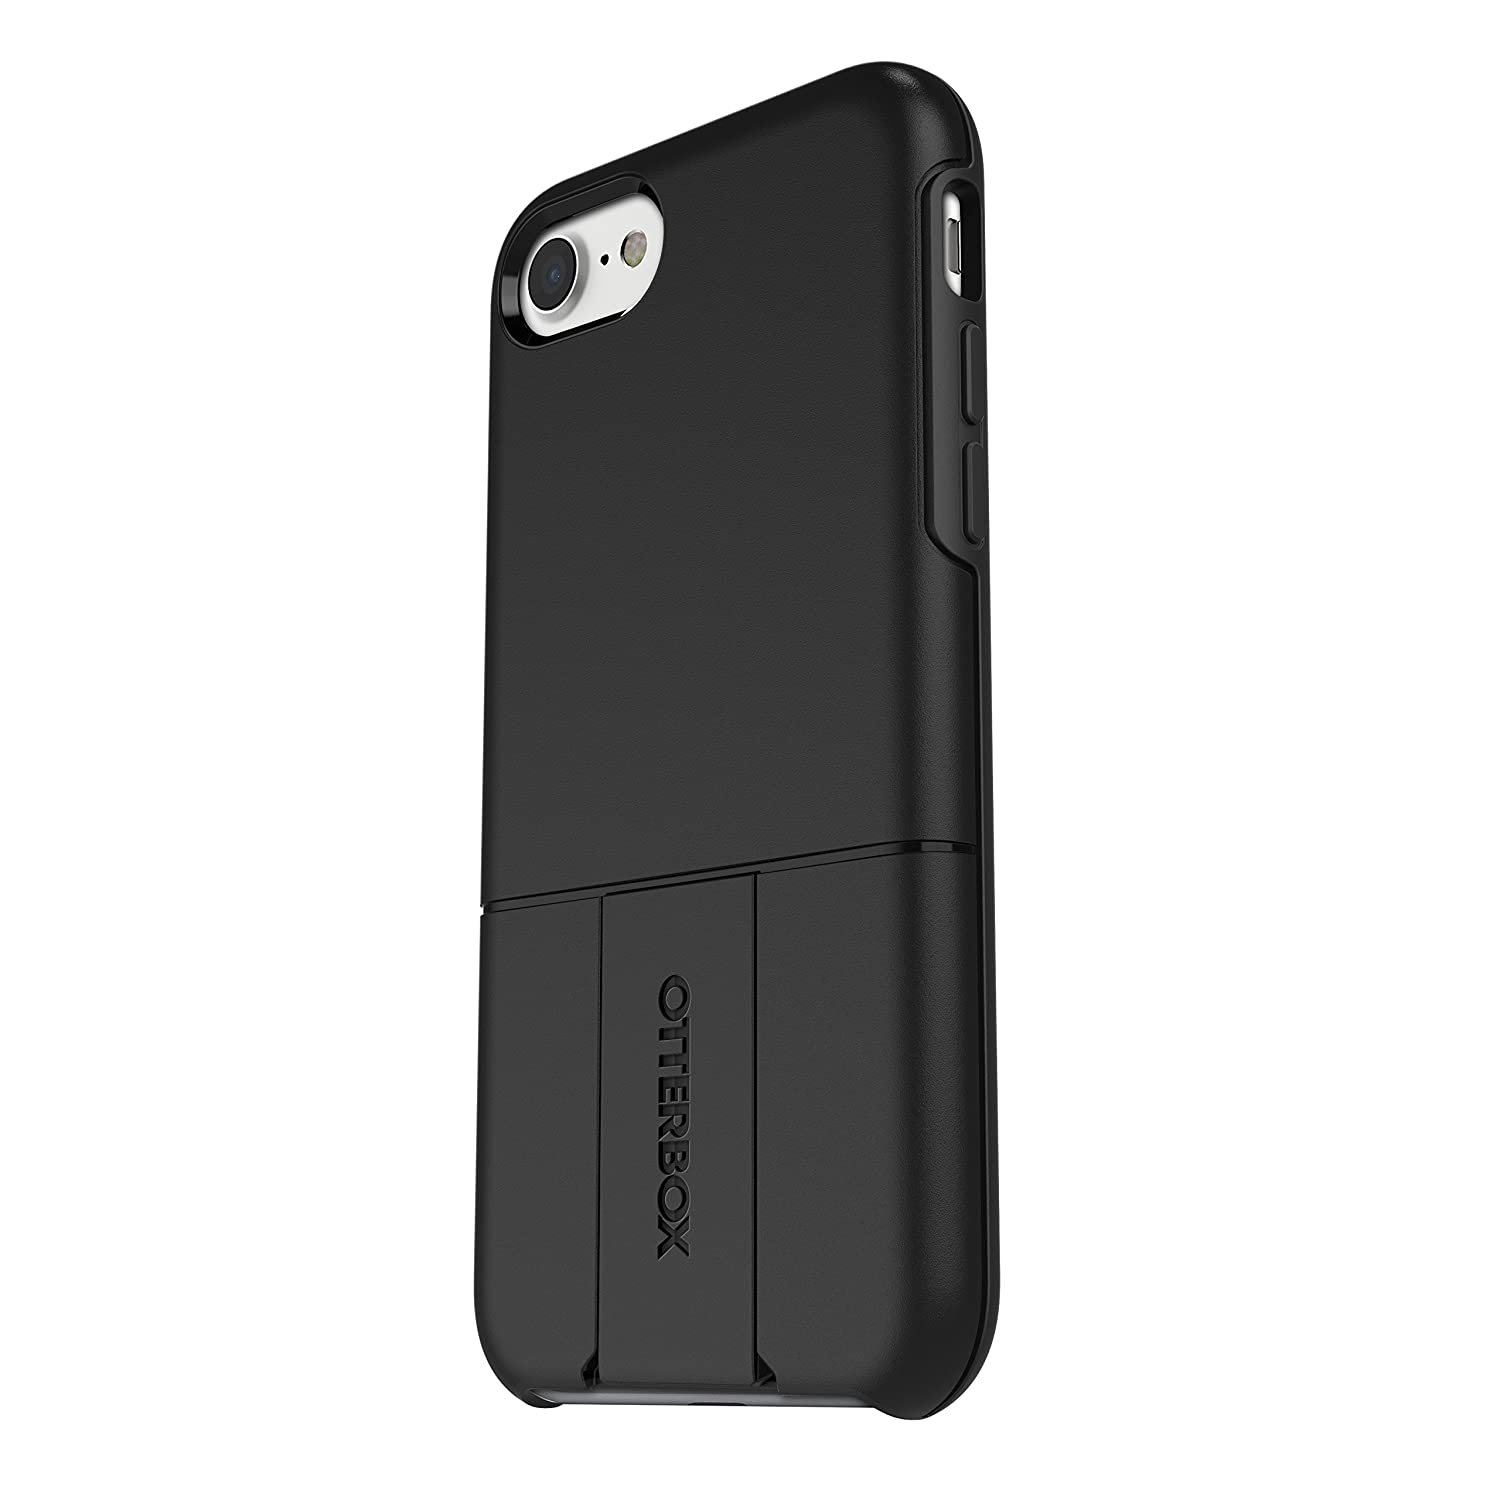 on sale b8b3d 4486e OtterBox uniVERSE SERIES Module/Swappable Case for iPhone 7 (ONLY) - Retail  Packaging - BLACK